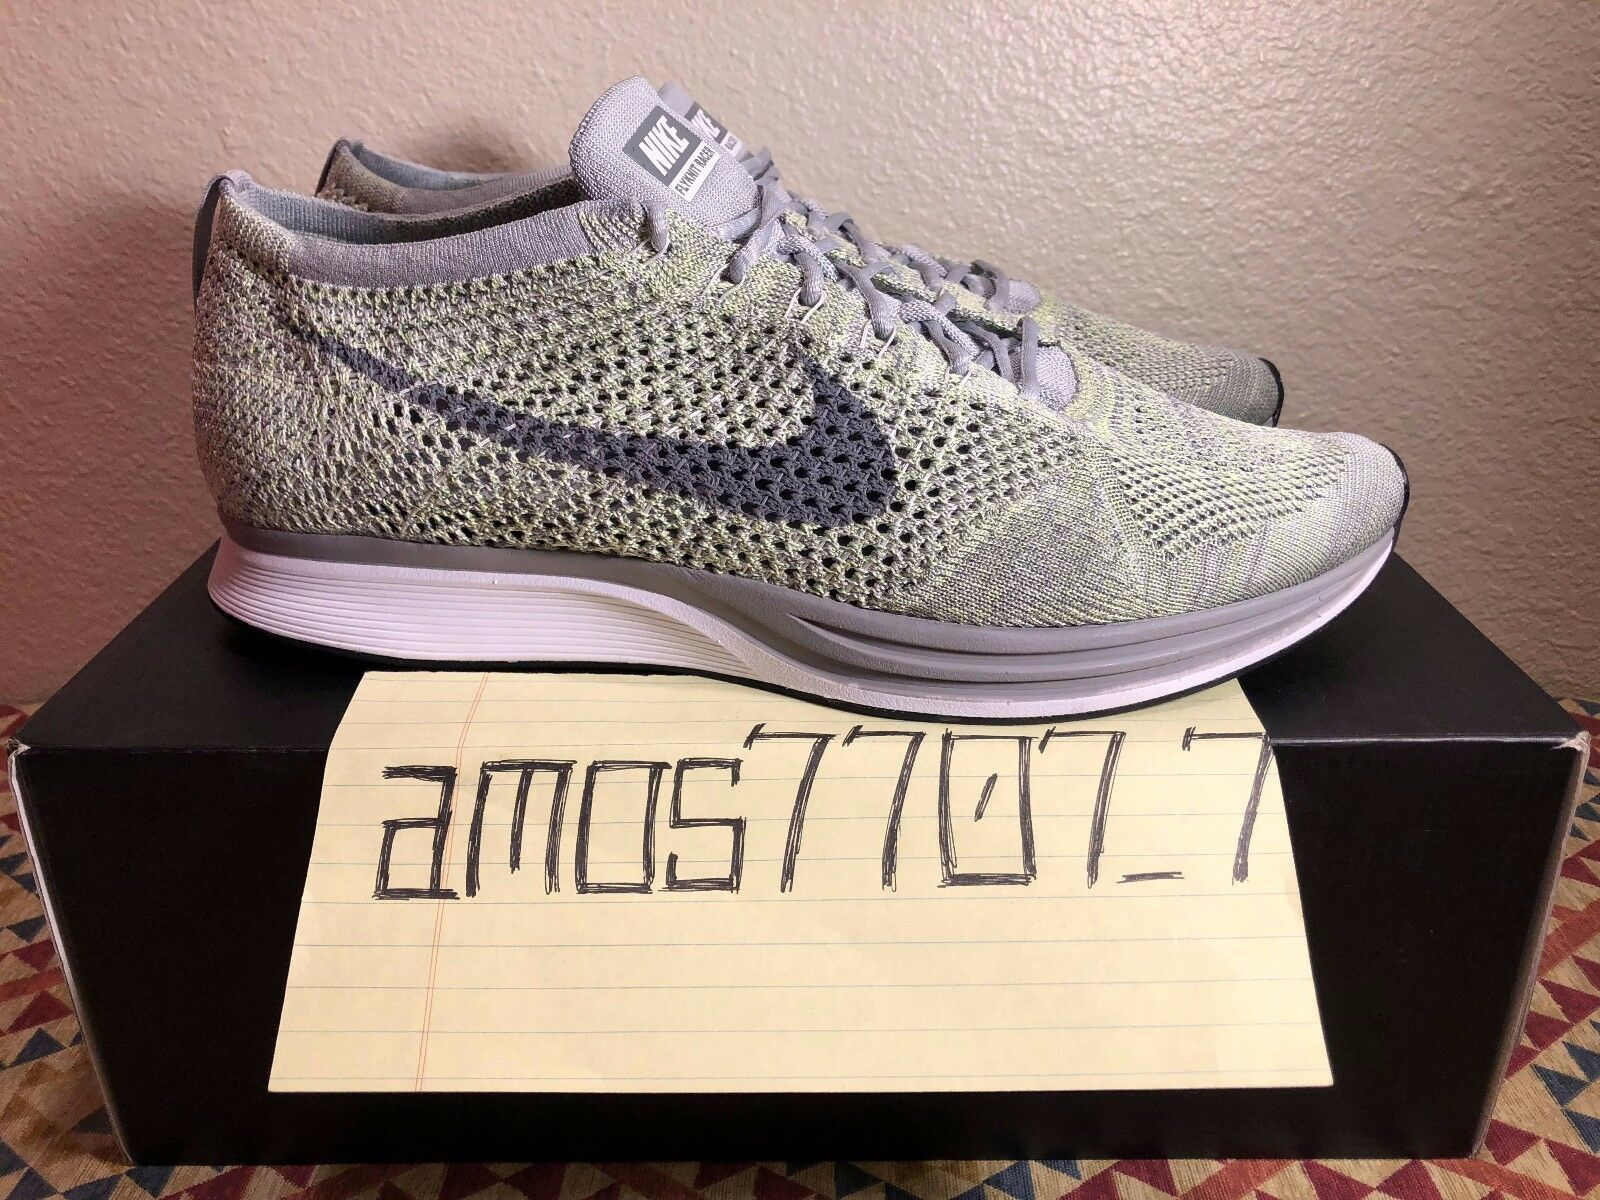 Nike Flyknit Racer Macaroon Pack Ghost Green White Grey 526628 013 Men Size 13